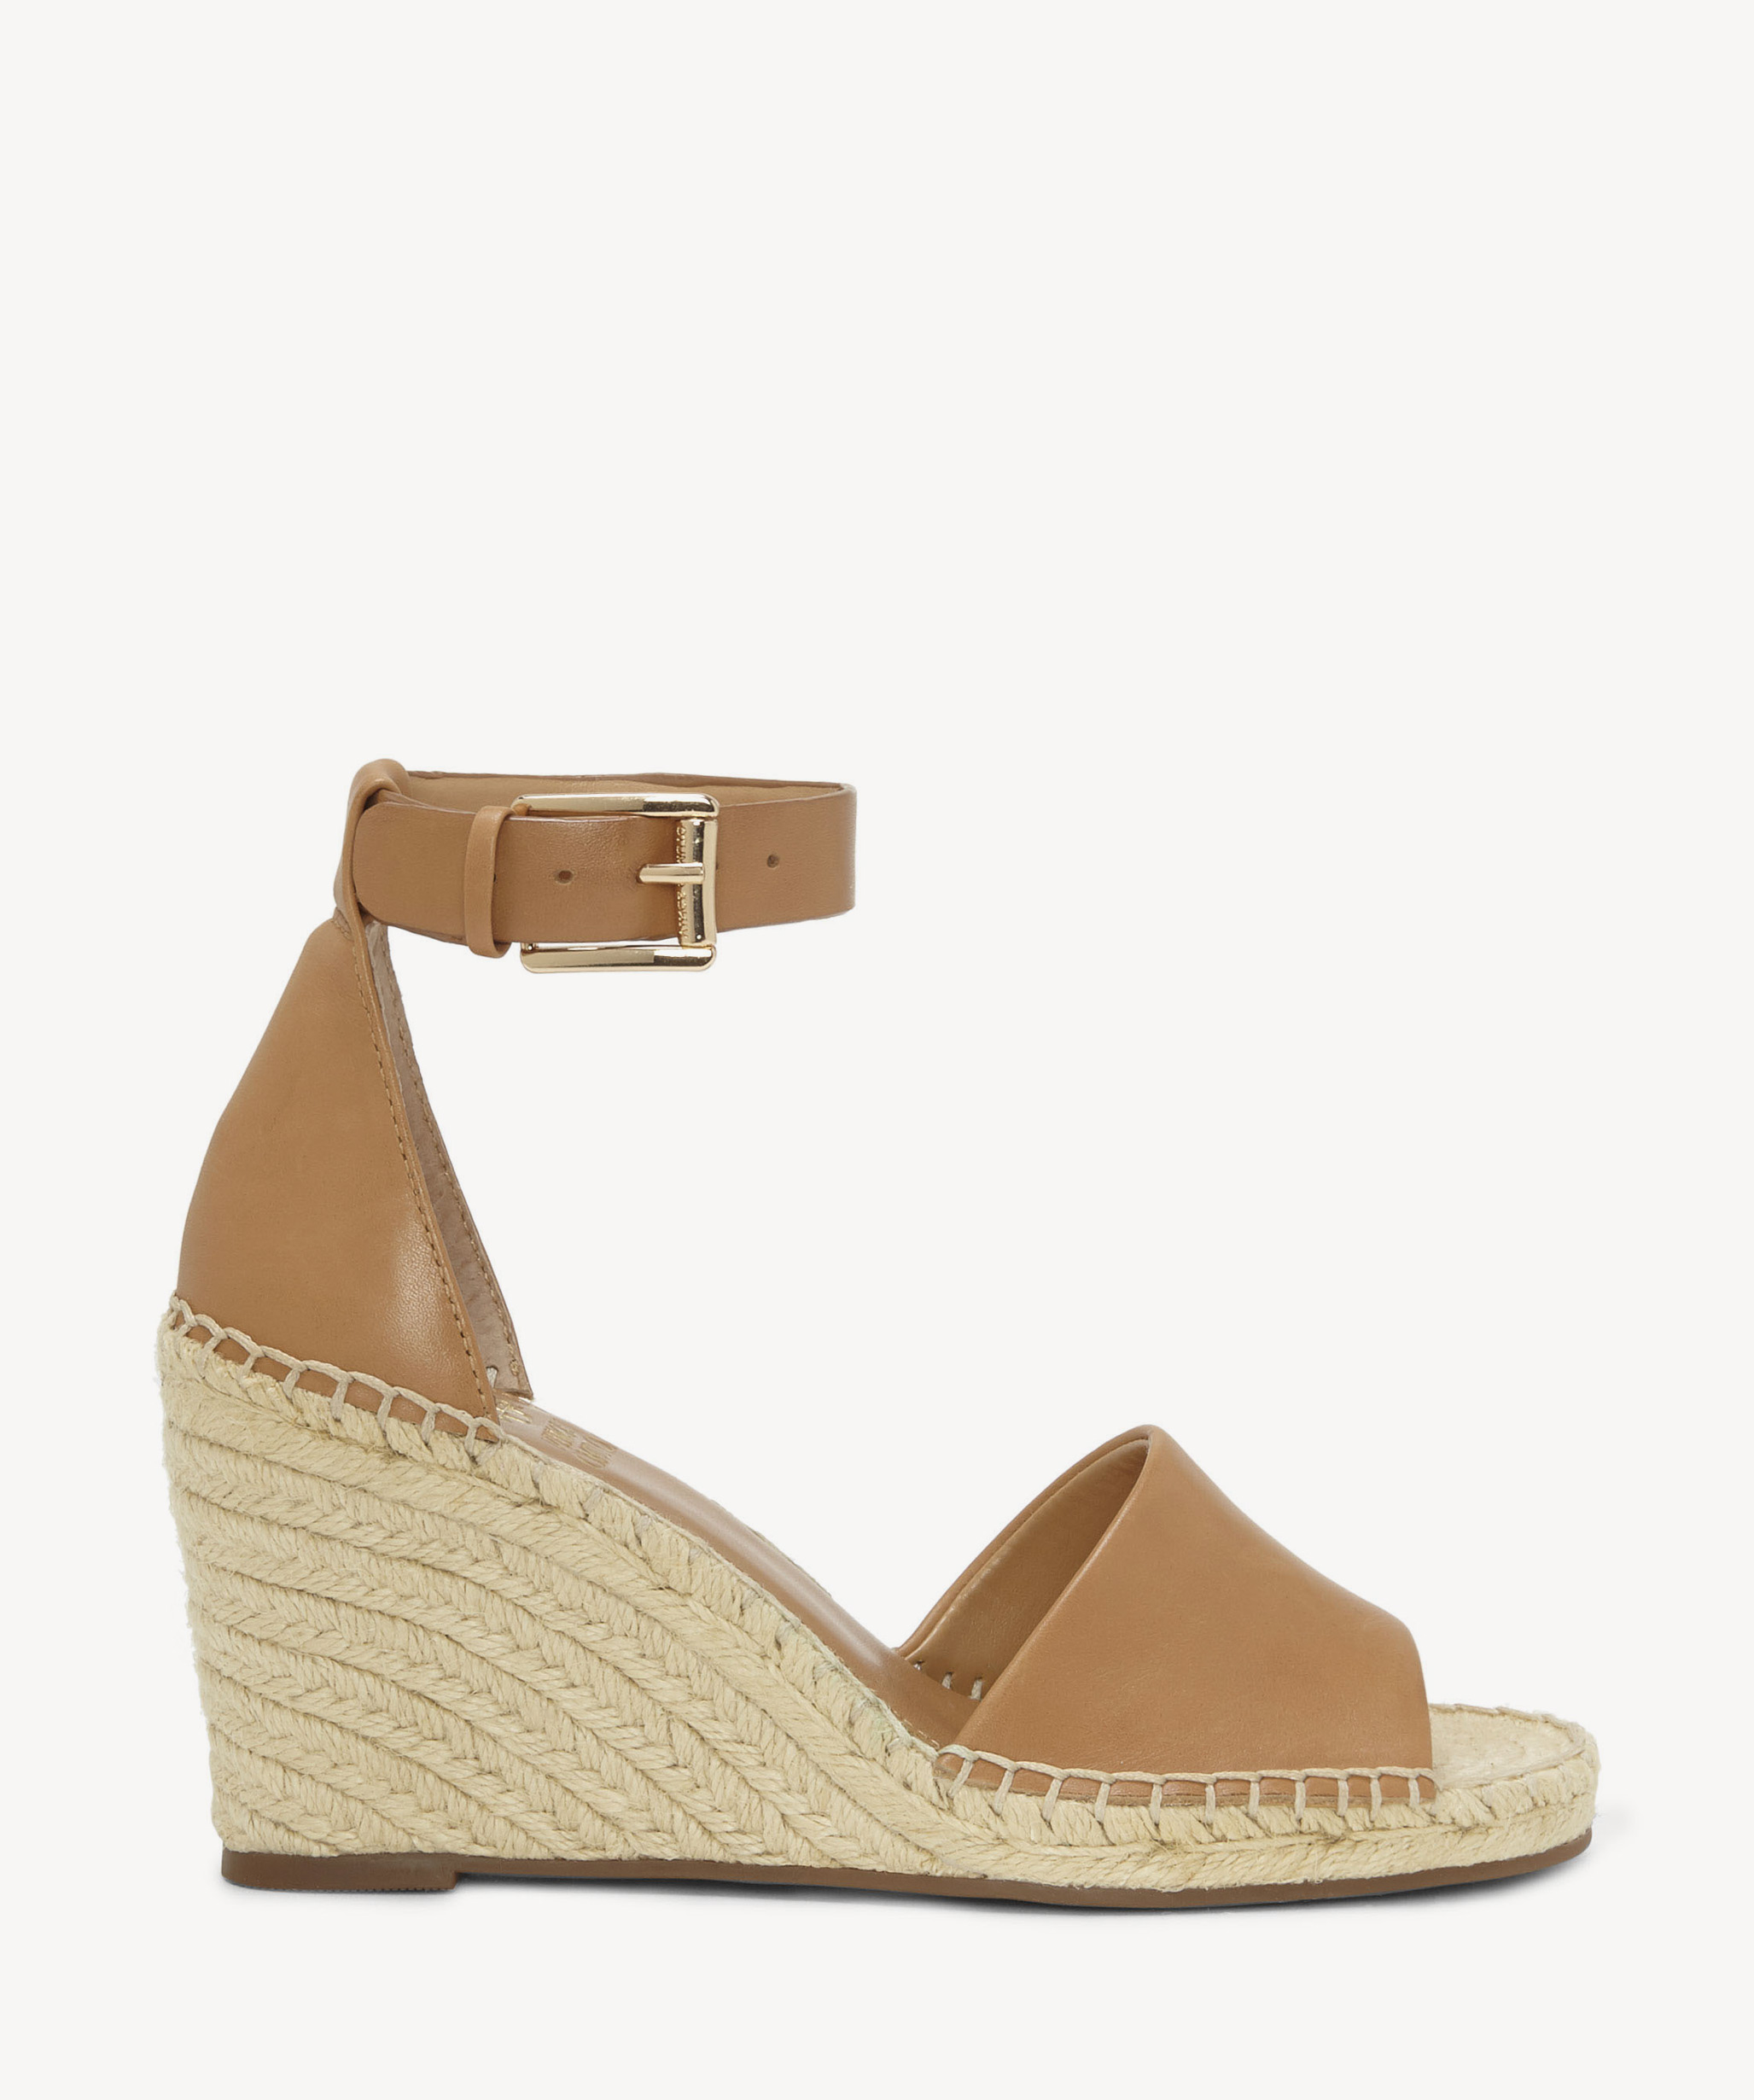 b9a550fdcc5f Vince Camuto Women s Leera Espadrille Wedges Tan